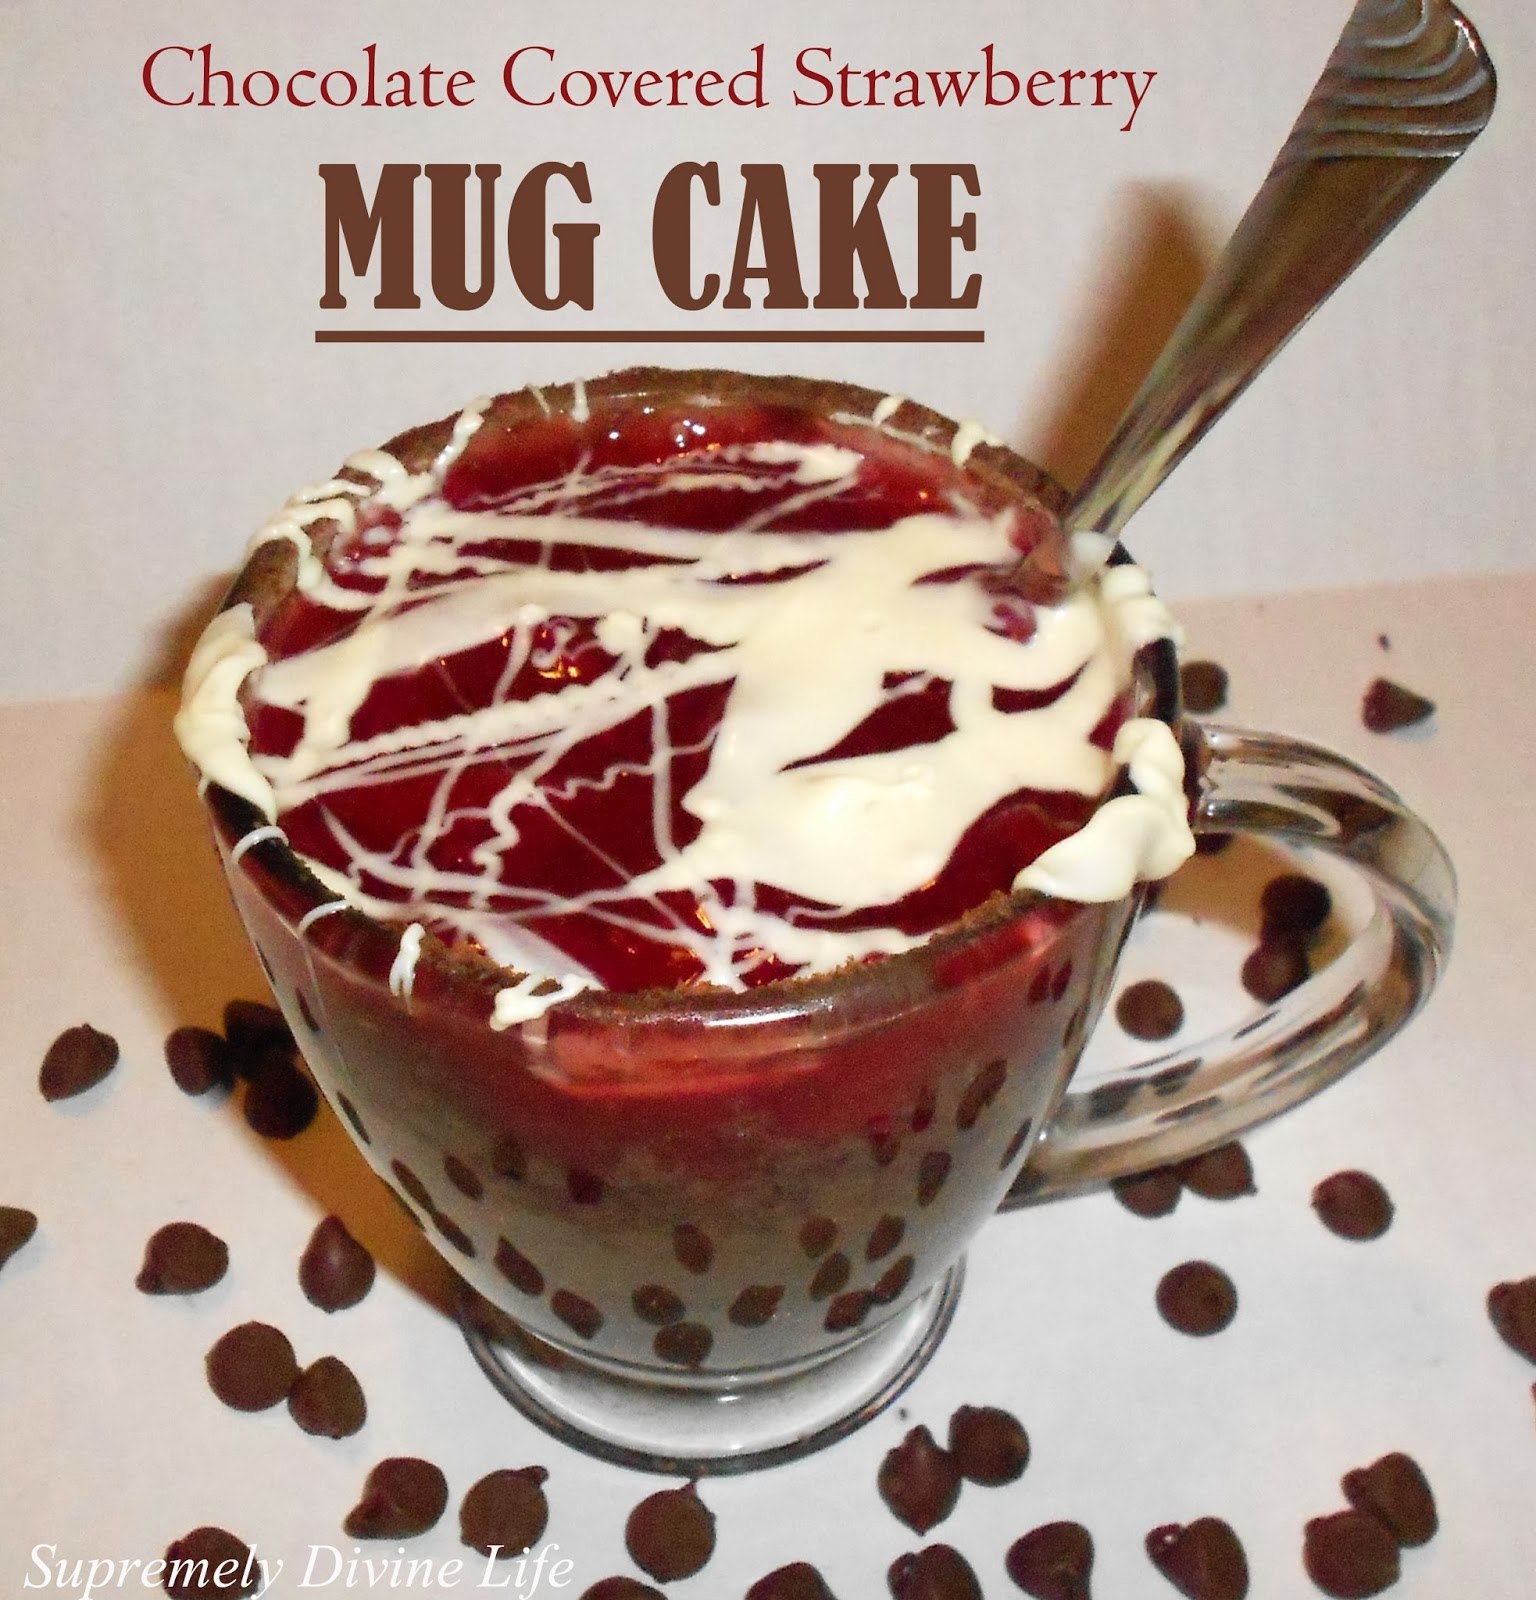 Chocolate mug cake covered with strawberry filling and melted chocolate.